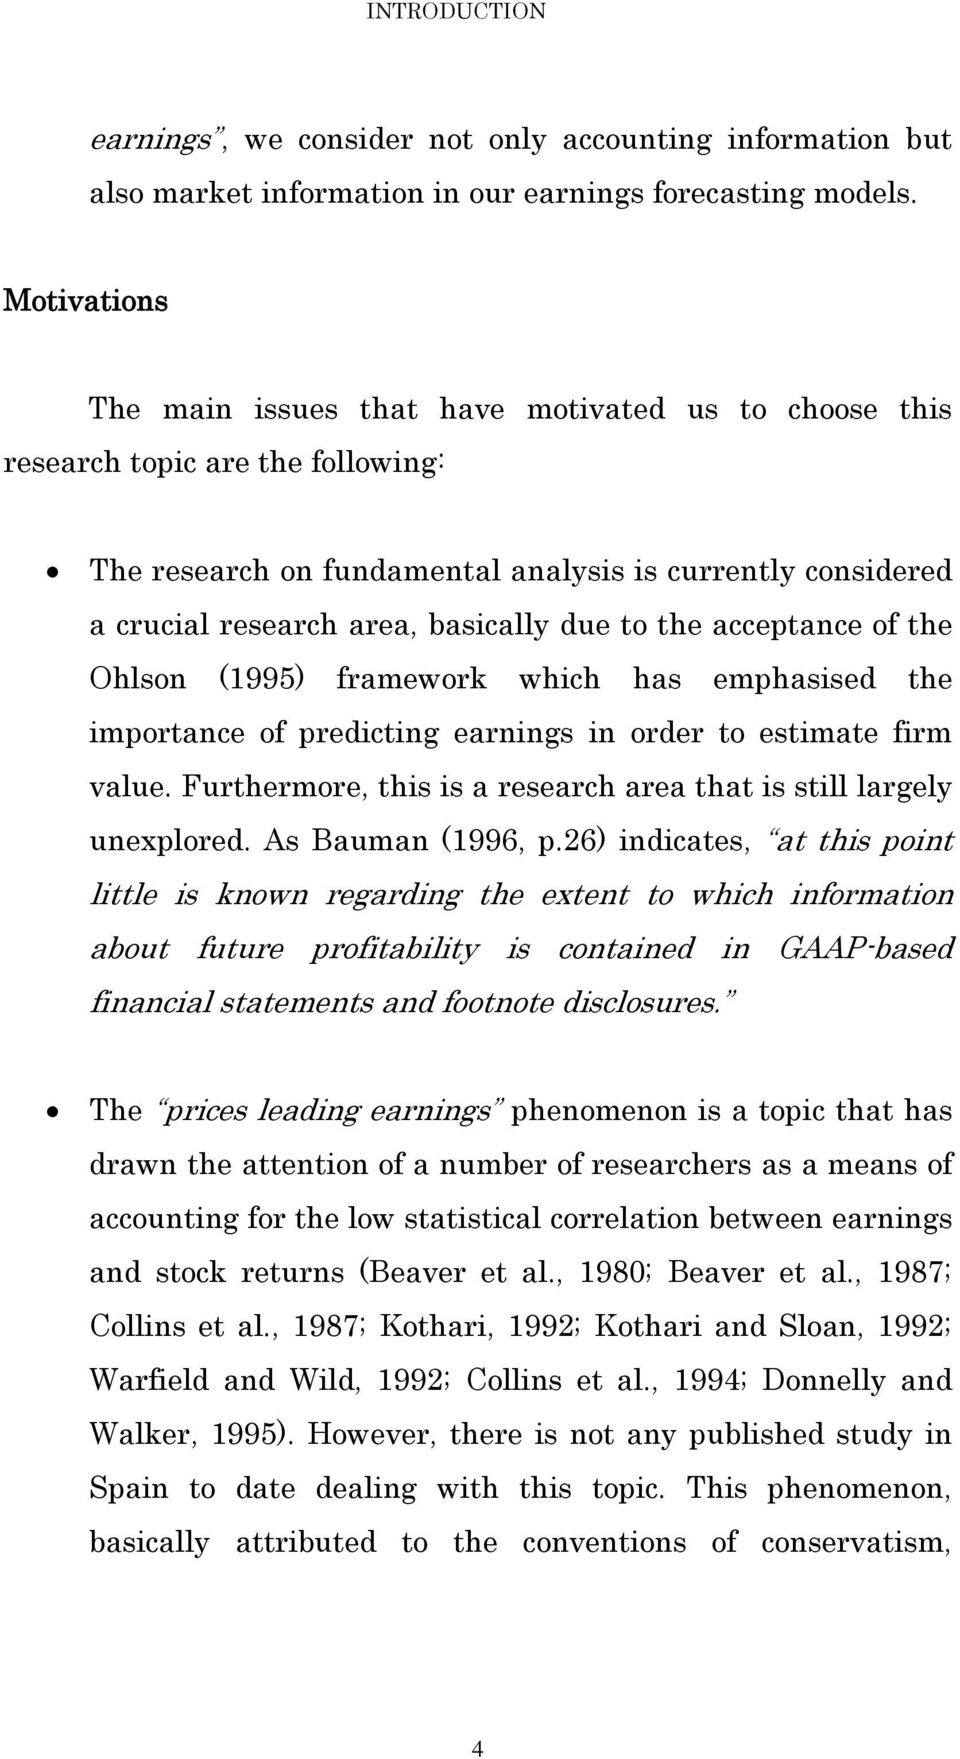 to the acceptance of the Ohlson (1995) framework which has emphasised the importance of predicting earnings in order to estimate firm value.